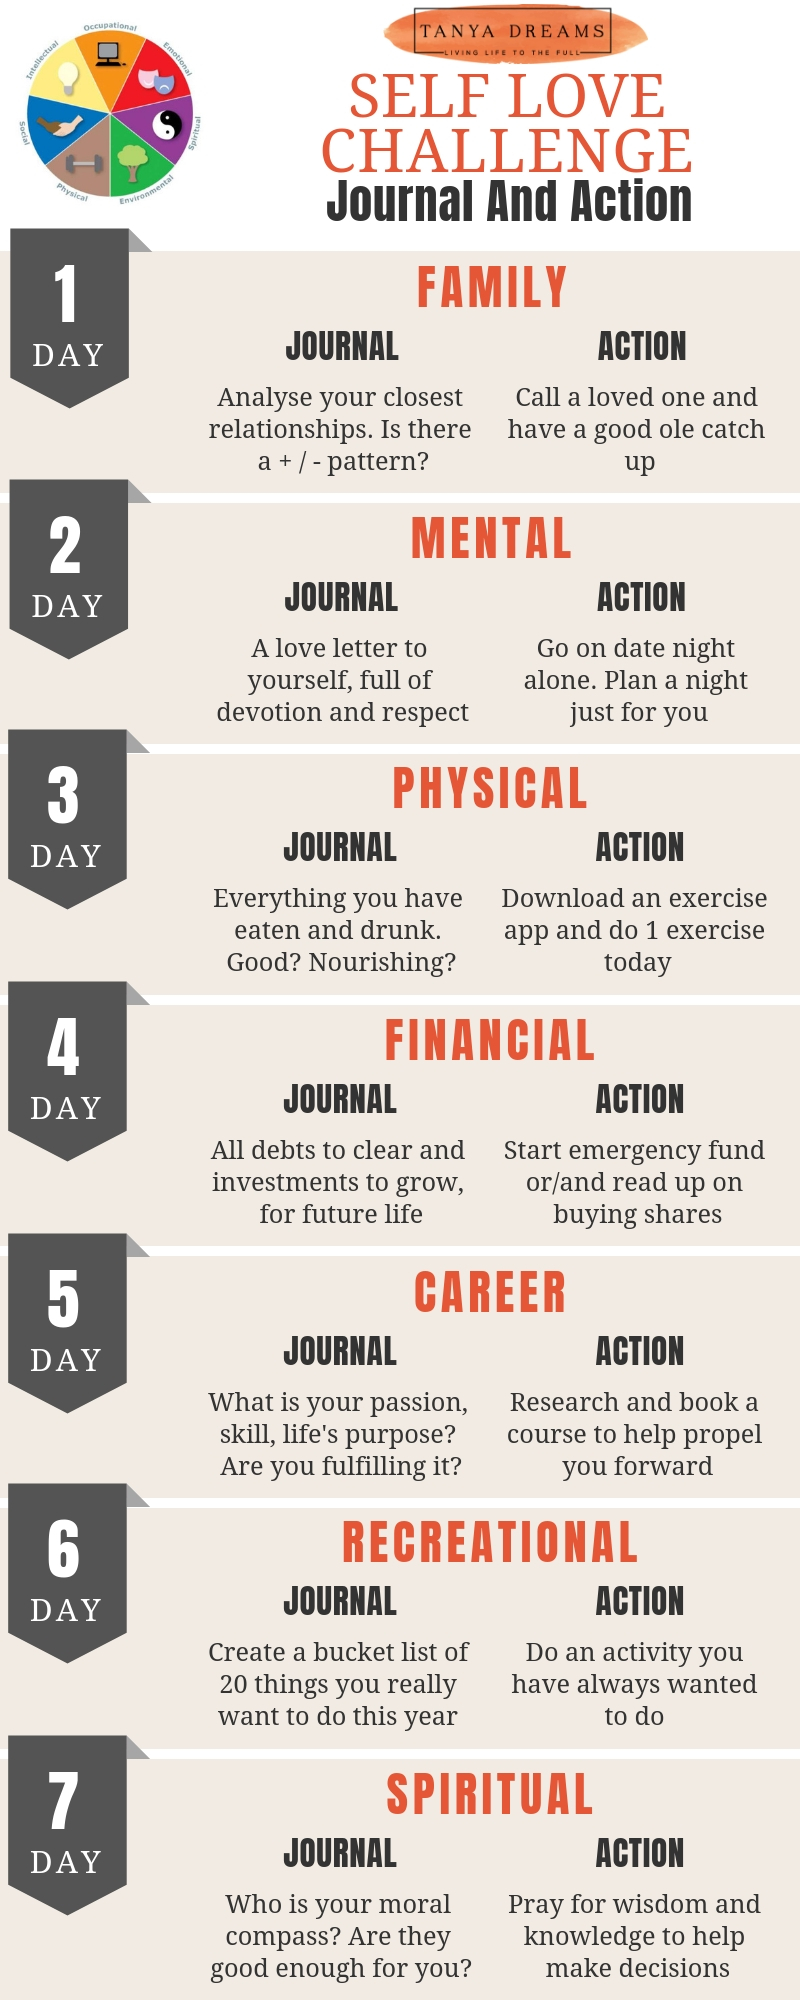 7 Days Self Love Challenge Journal And Action